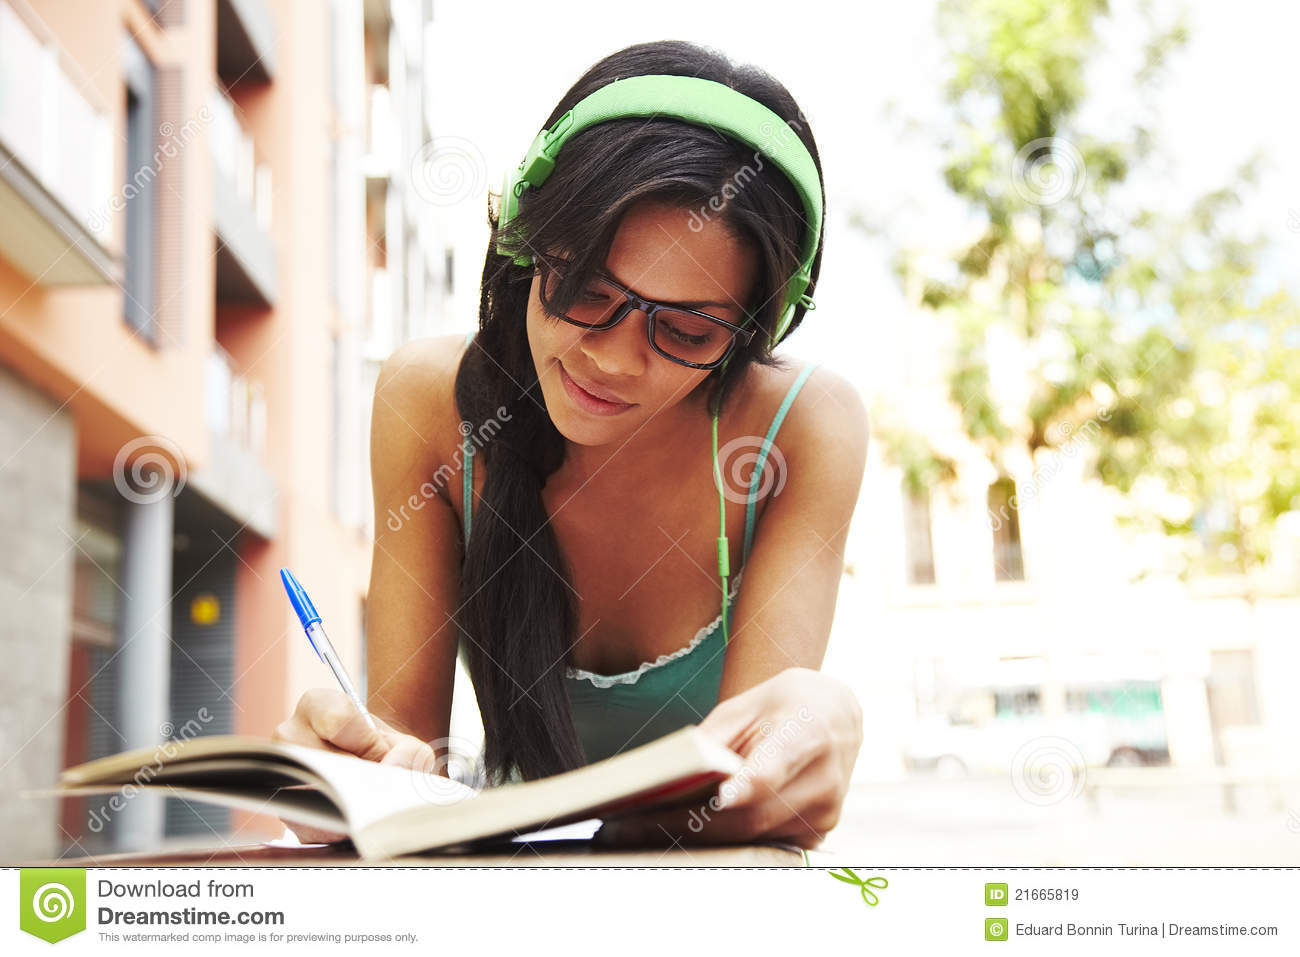 Cute Girl Listening Music And Studying Stock Image - Image ...